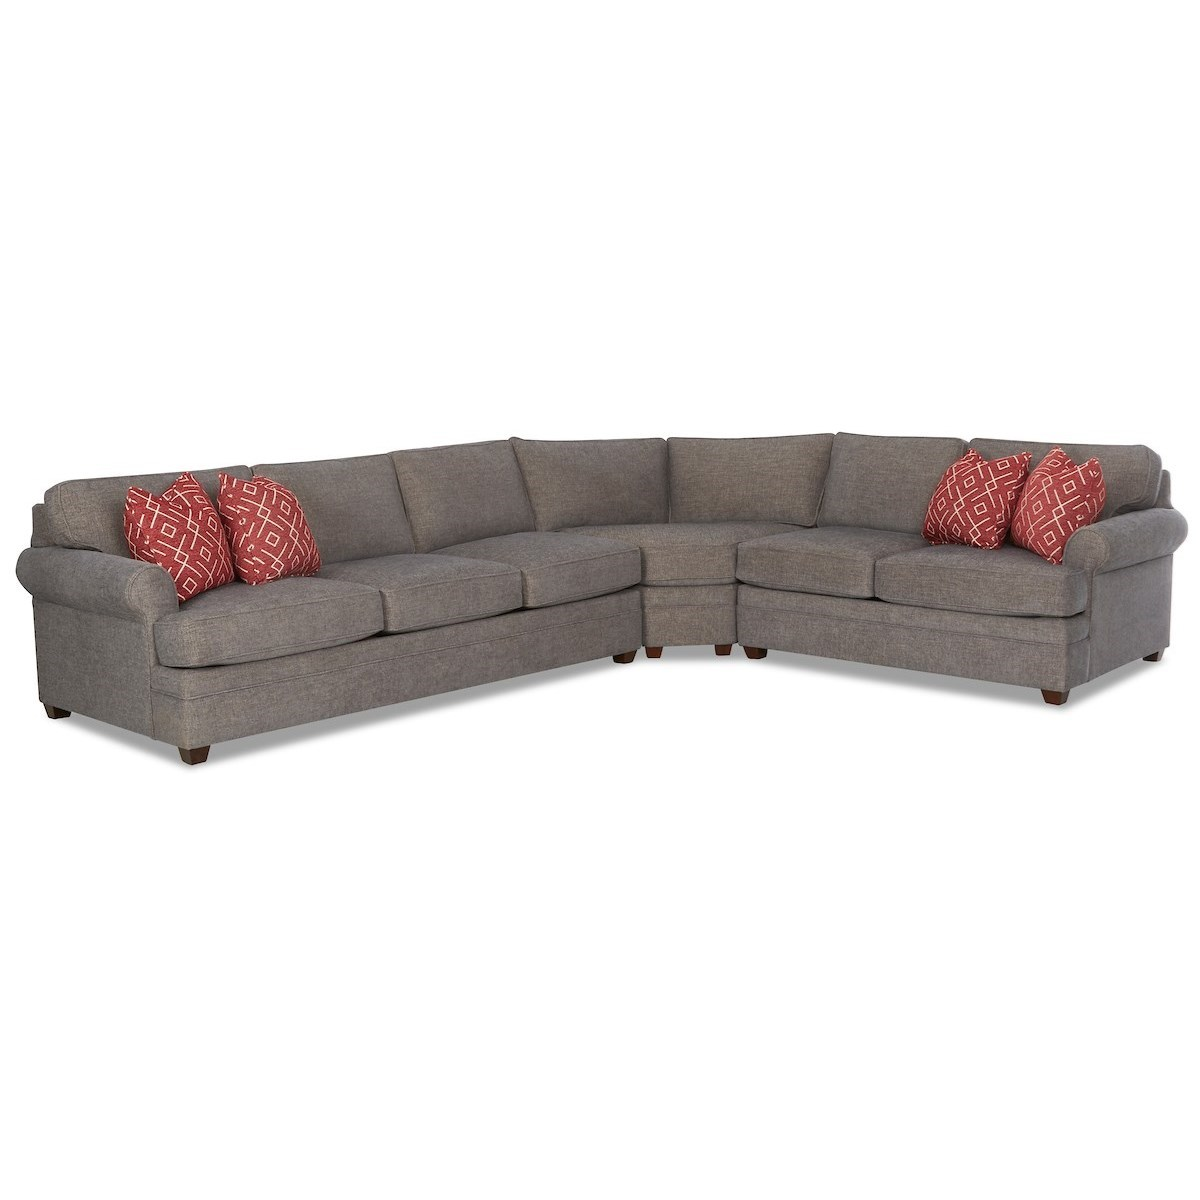 Living Your Way 3-Piece Sectional Sofa by Klaussner at Johnny Janosik